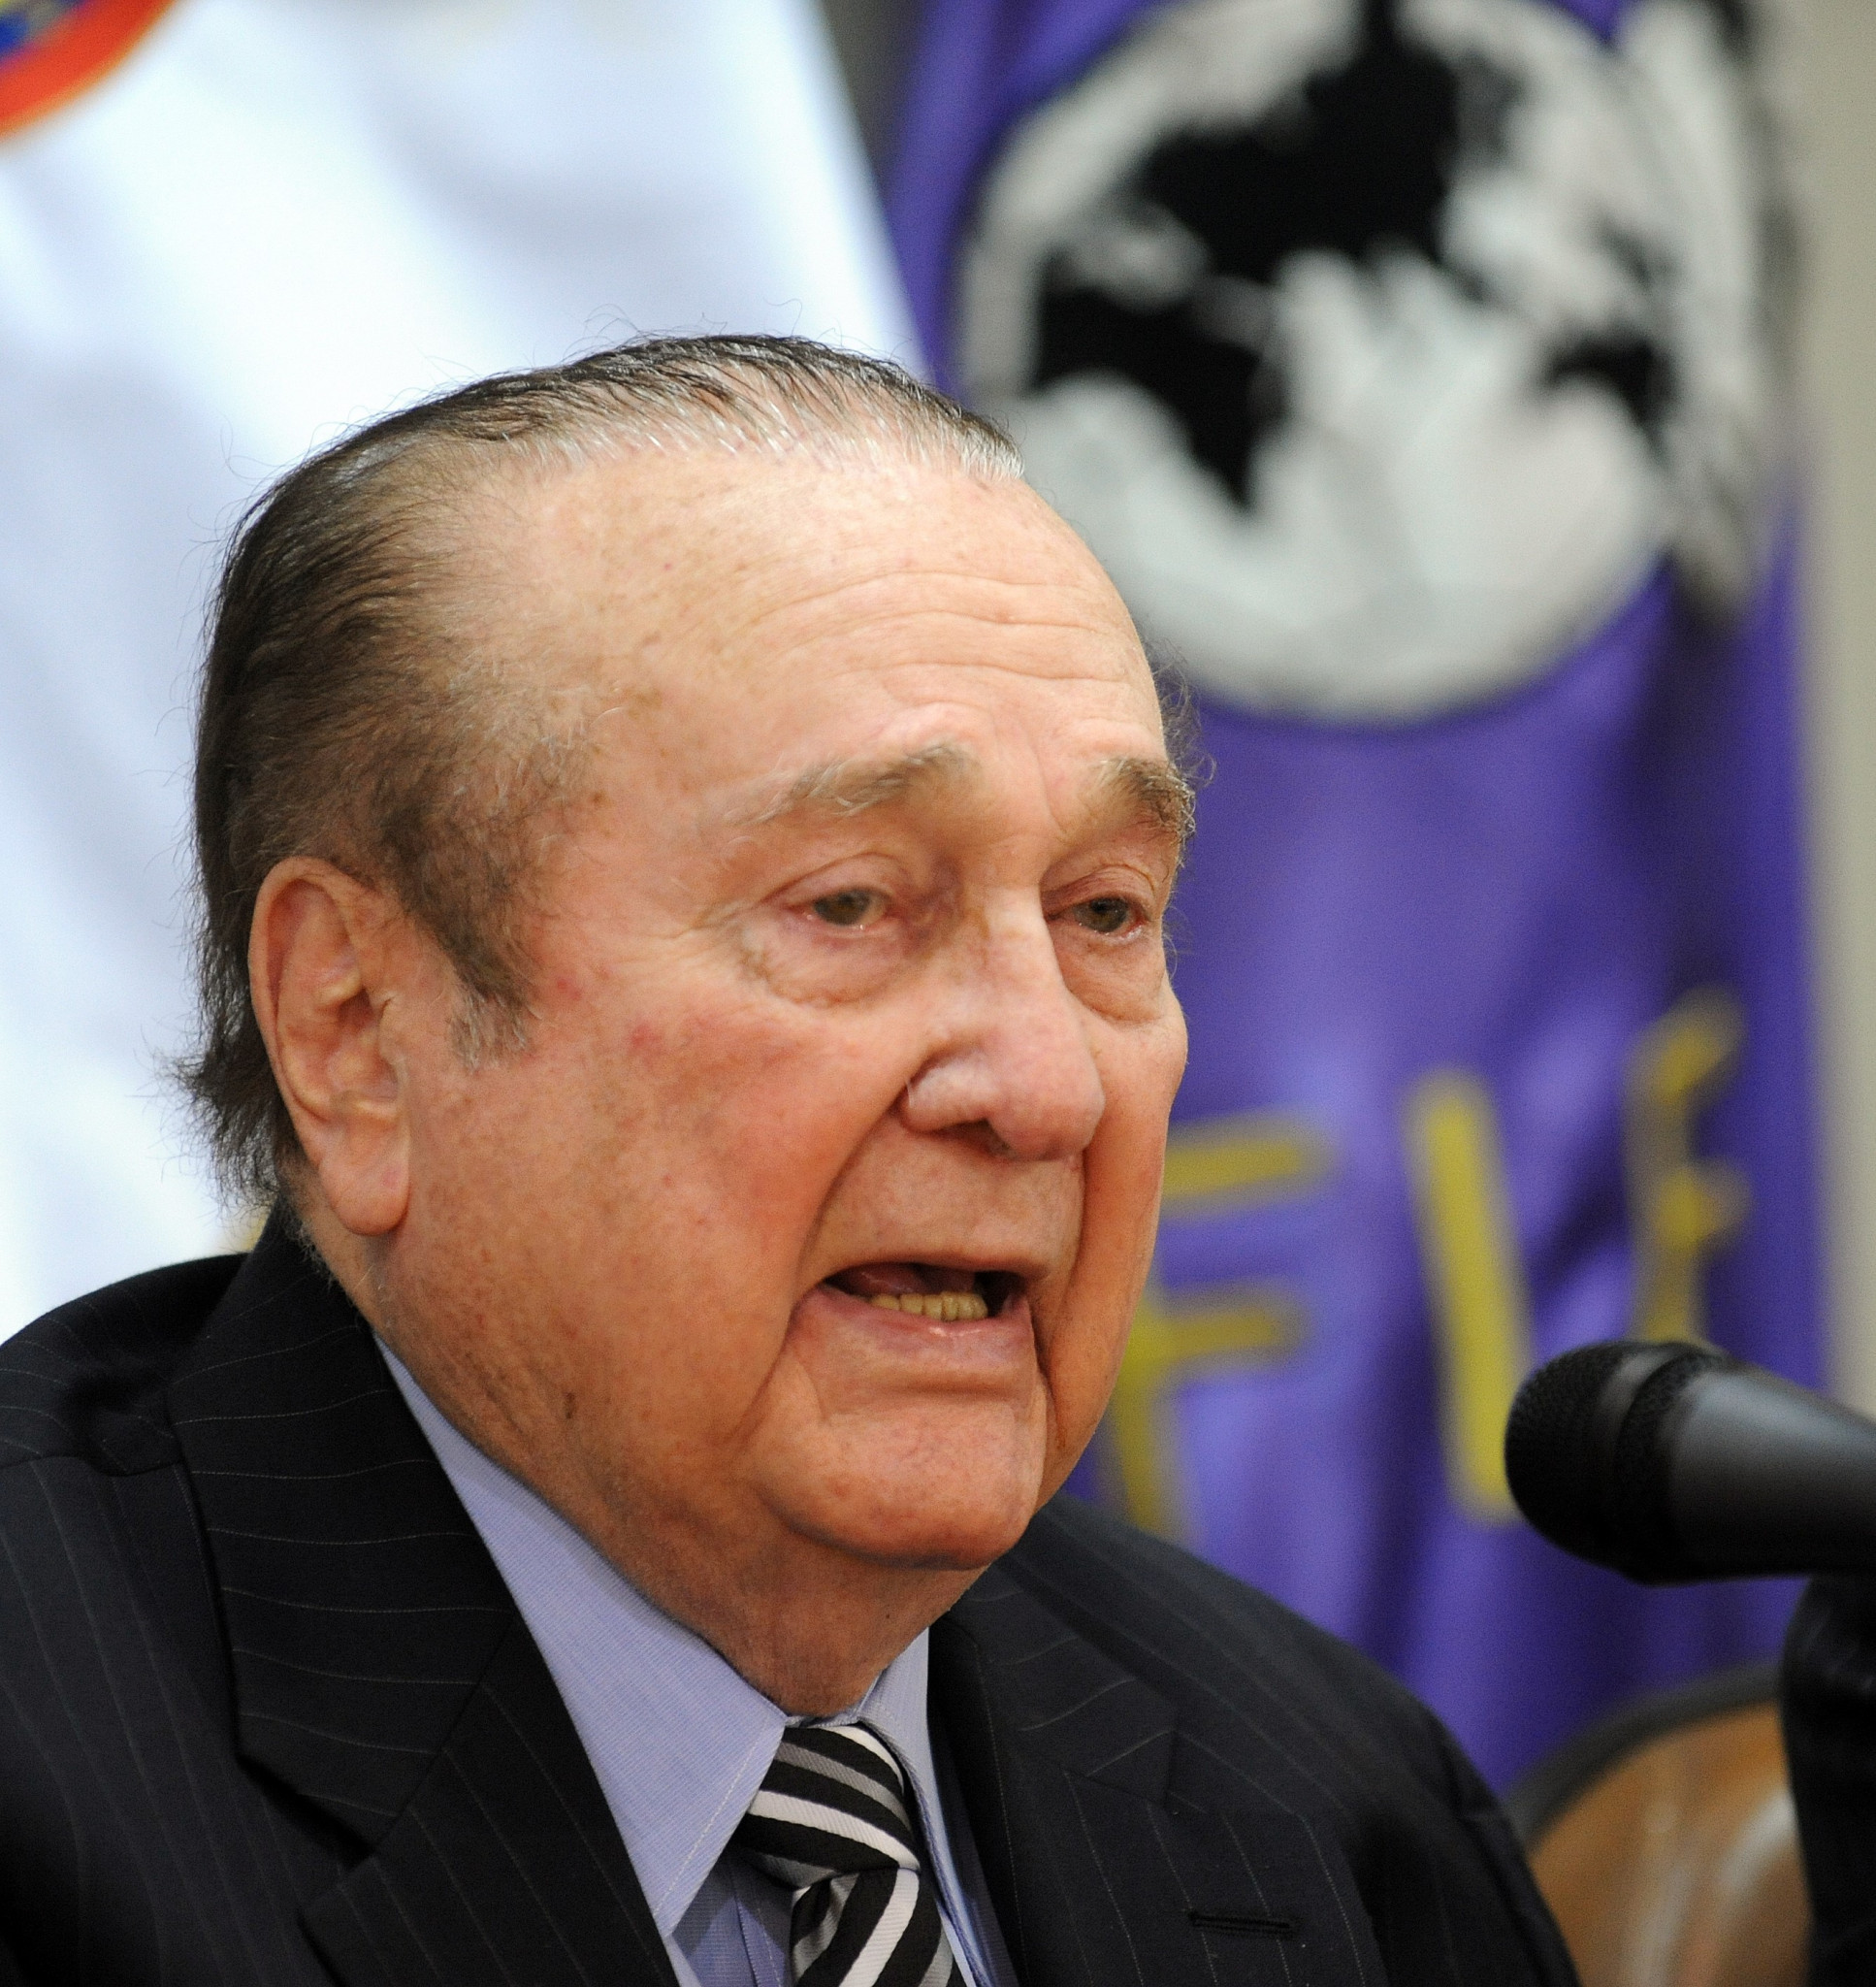 Disgraced former CONMEBOL President Leoz buried after death at age of 90